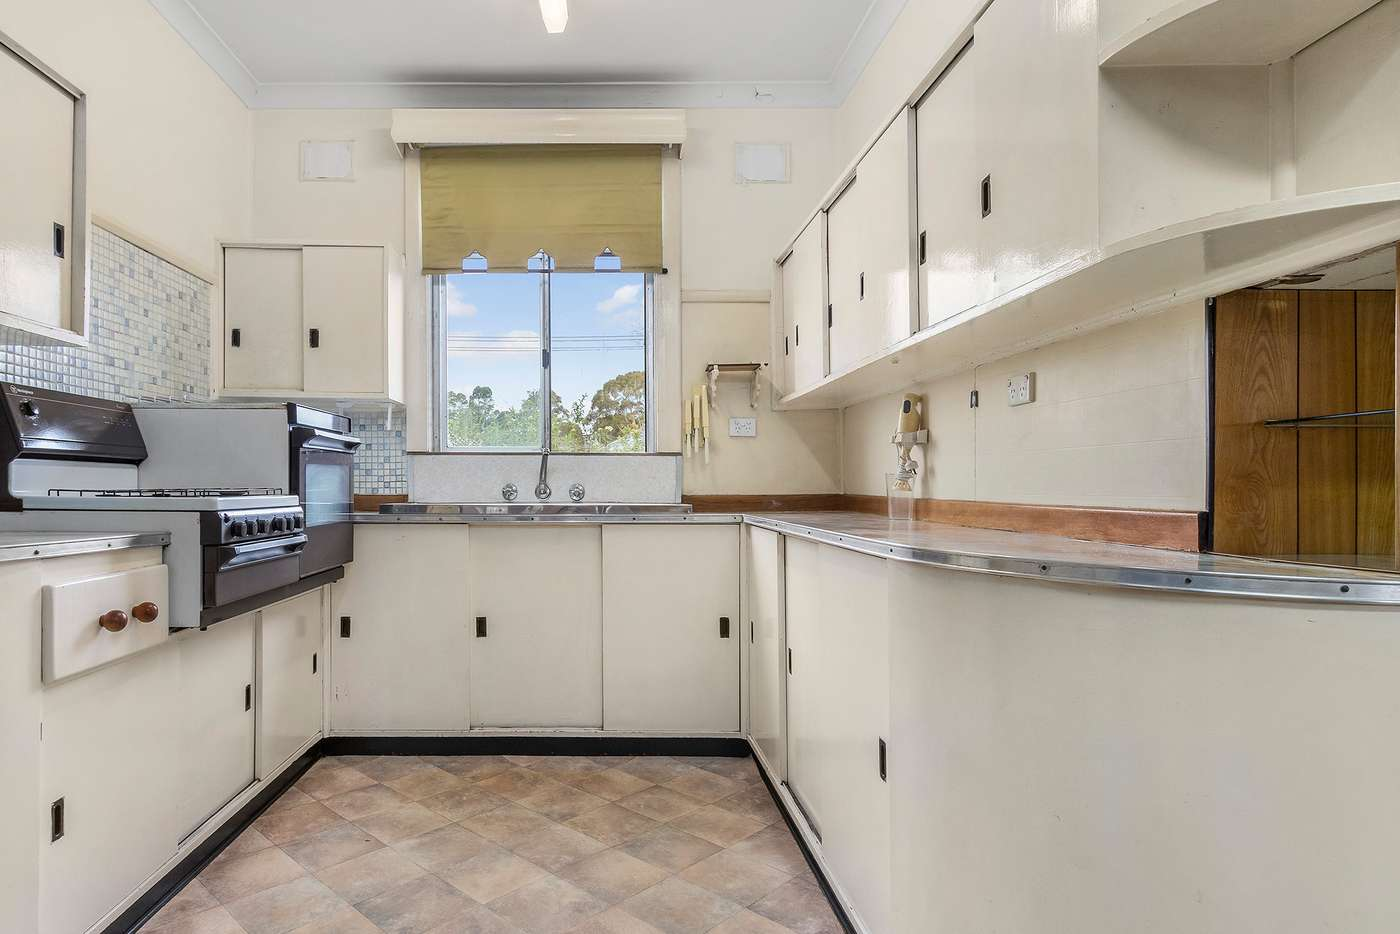 Fifth view of Homely house listing, 1 Carnley Avenue, New Lambton NSW 2305